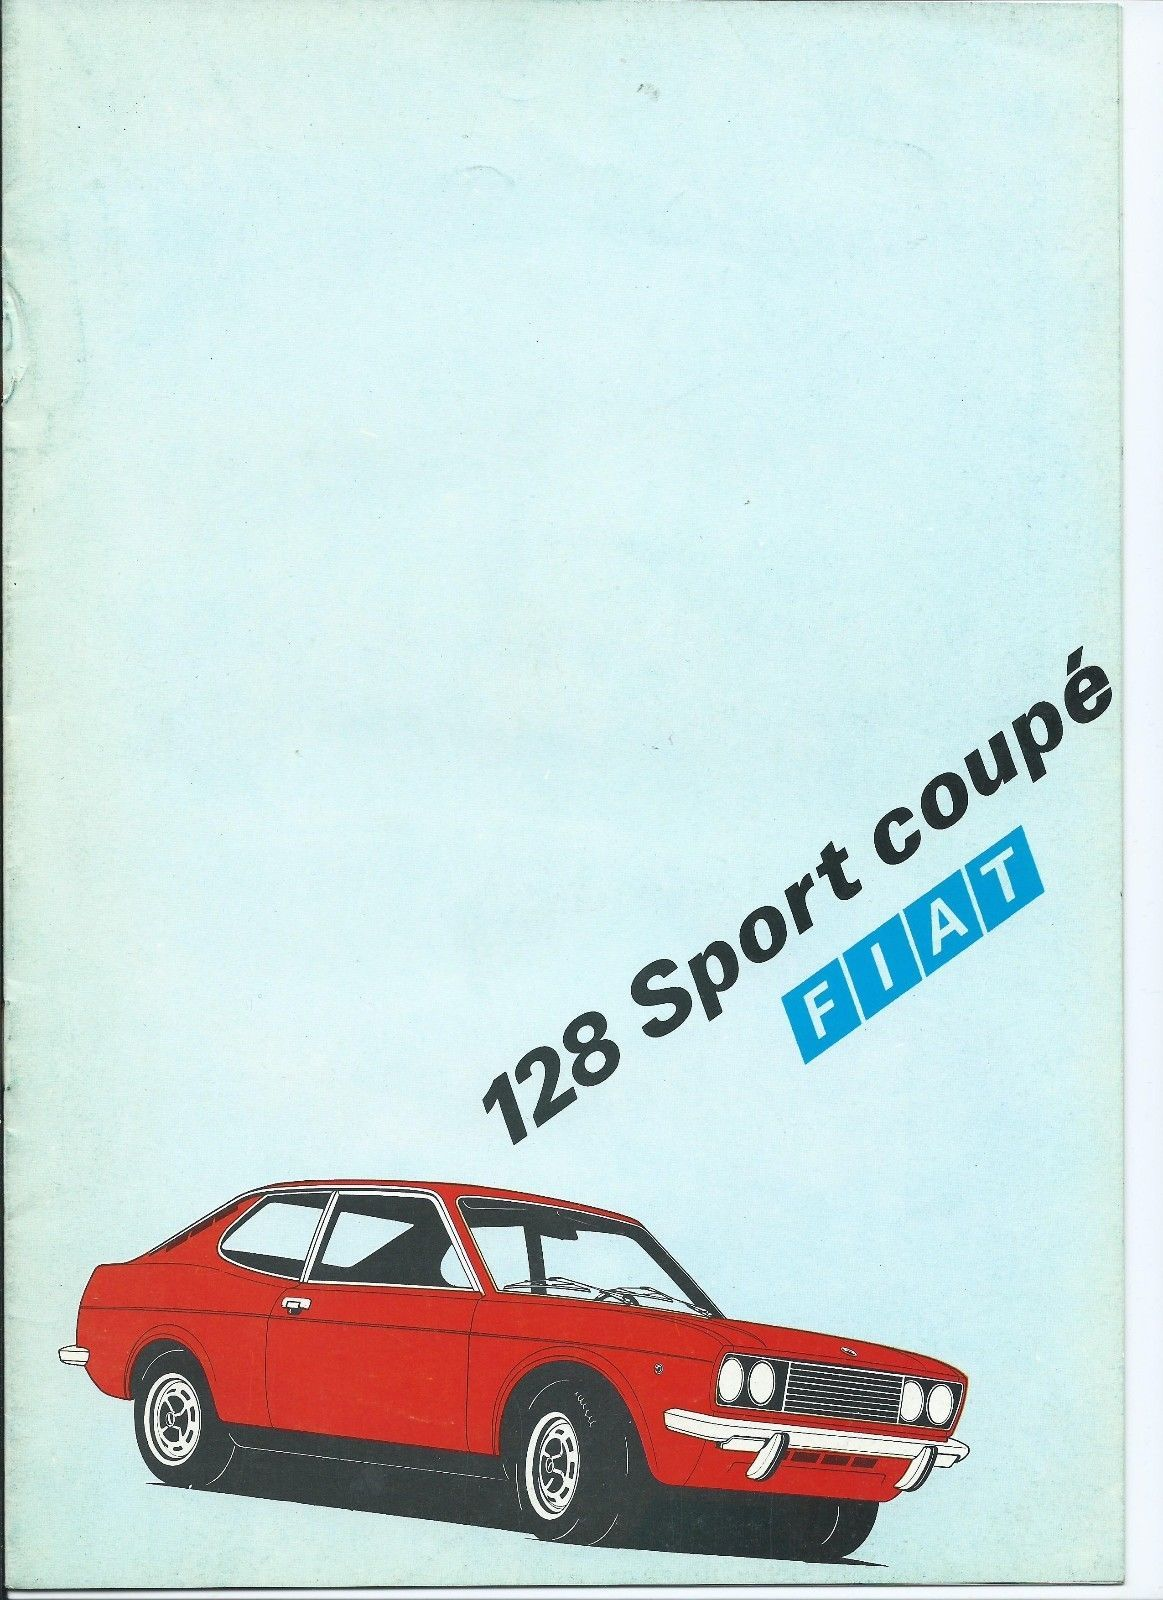 Nice Brochure For The Fiat 128 Sport Coupe 16 Pages Of Photographs